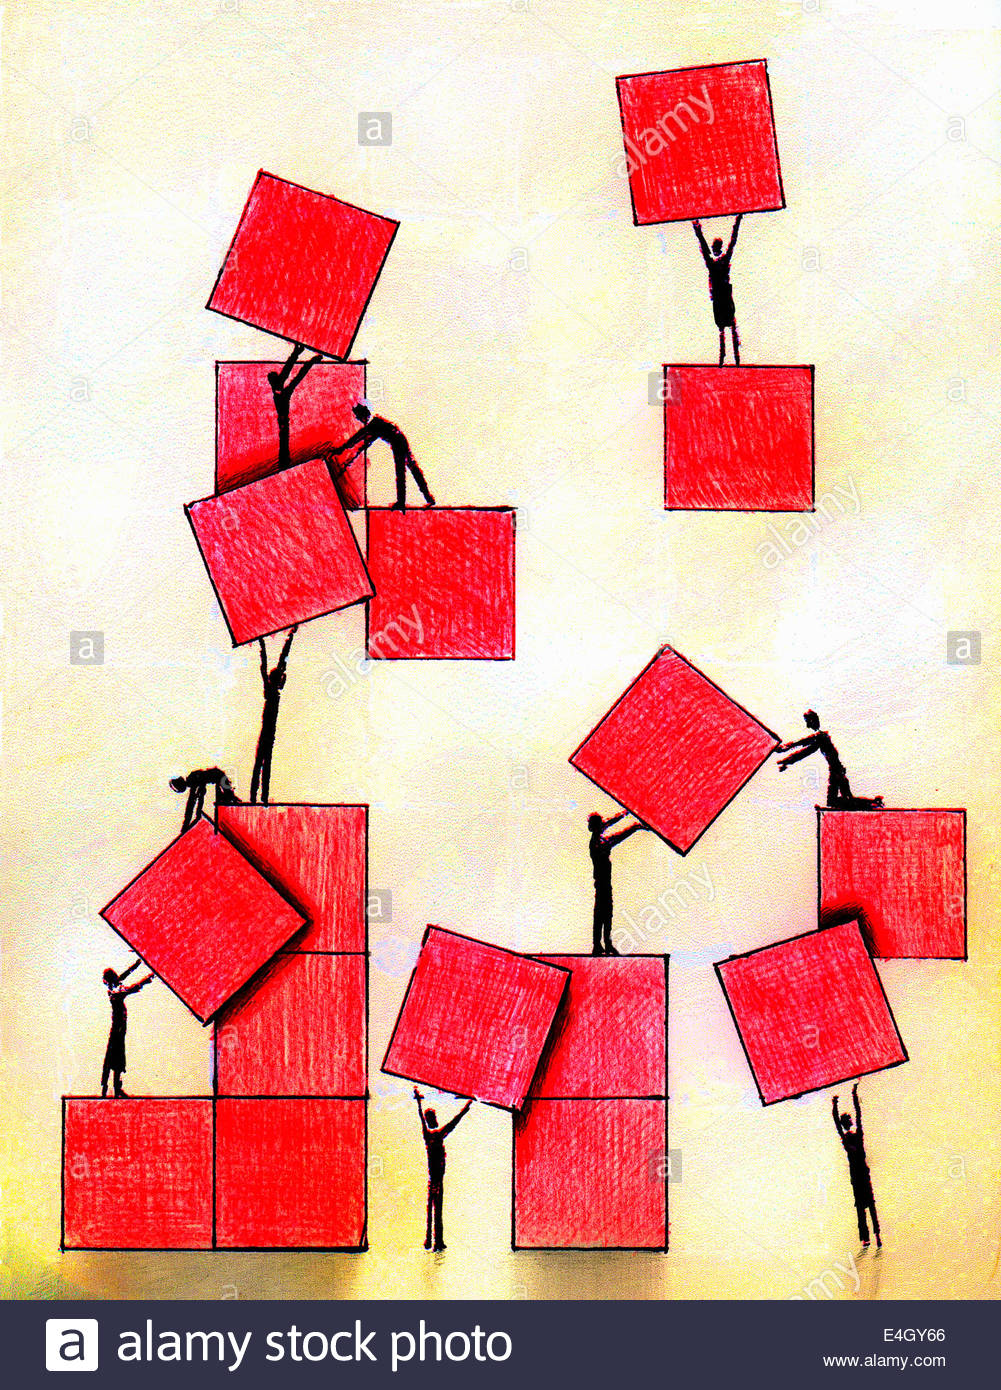 Business people working together moving red squares - Stock Image